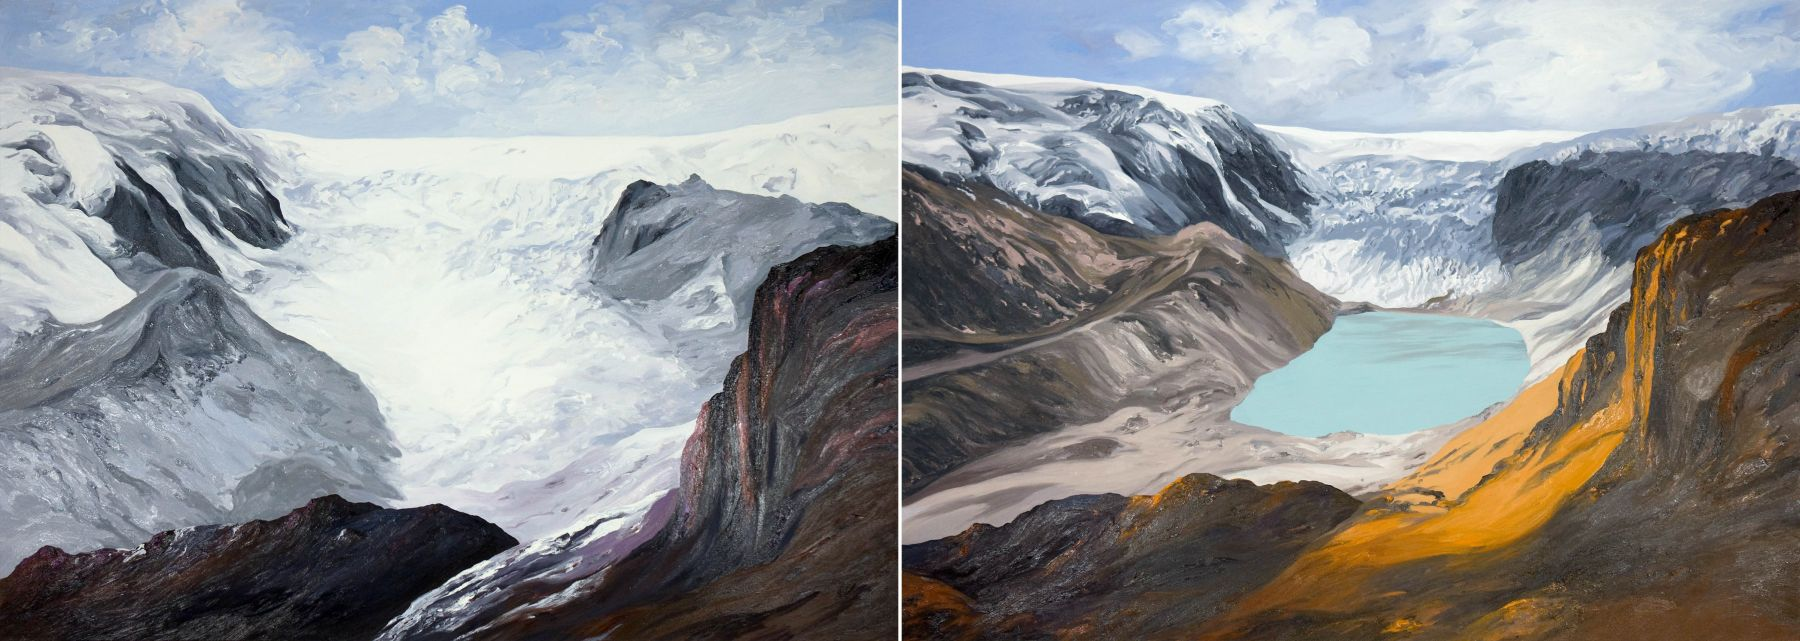 Diane Burko Locks Gallery Politics of Snow Qori Kalis Glacier Peru